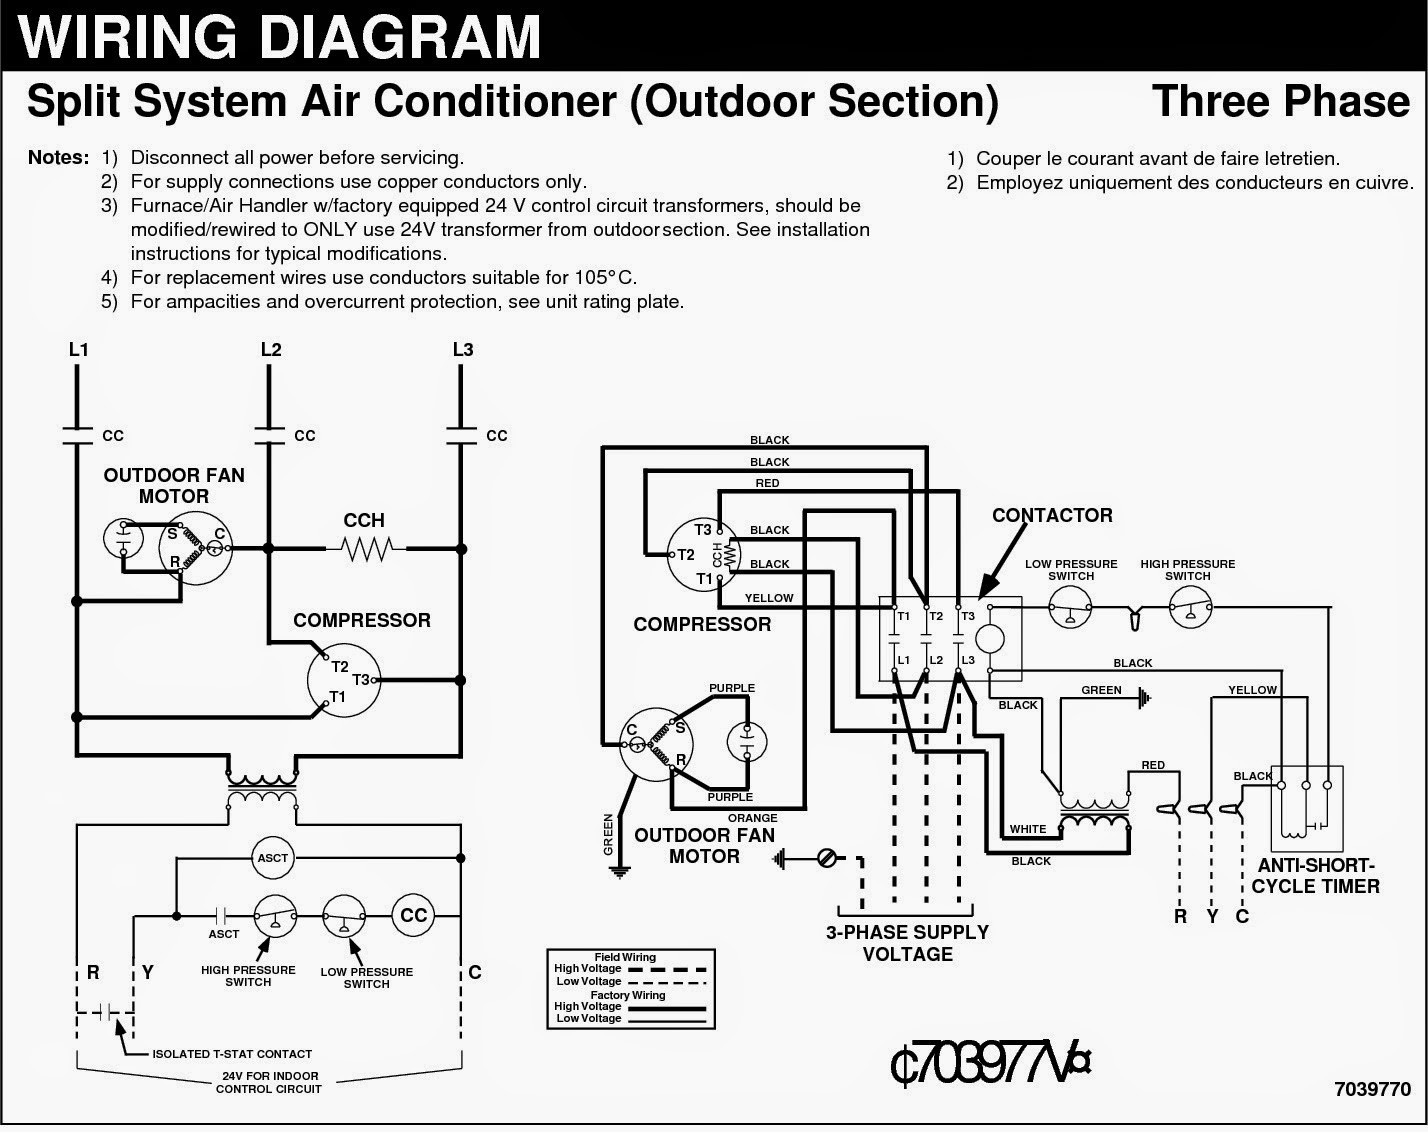 Basic Electrical Wiring Diagrams Commercial Warehouse